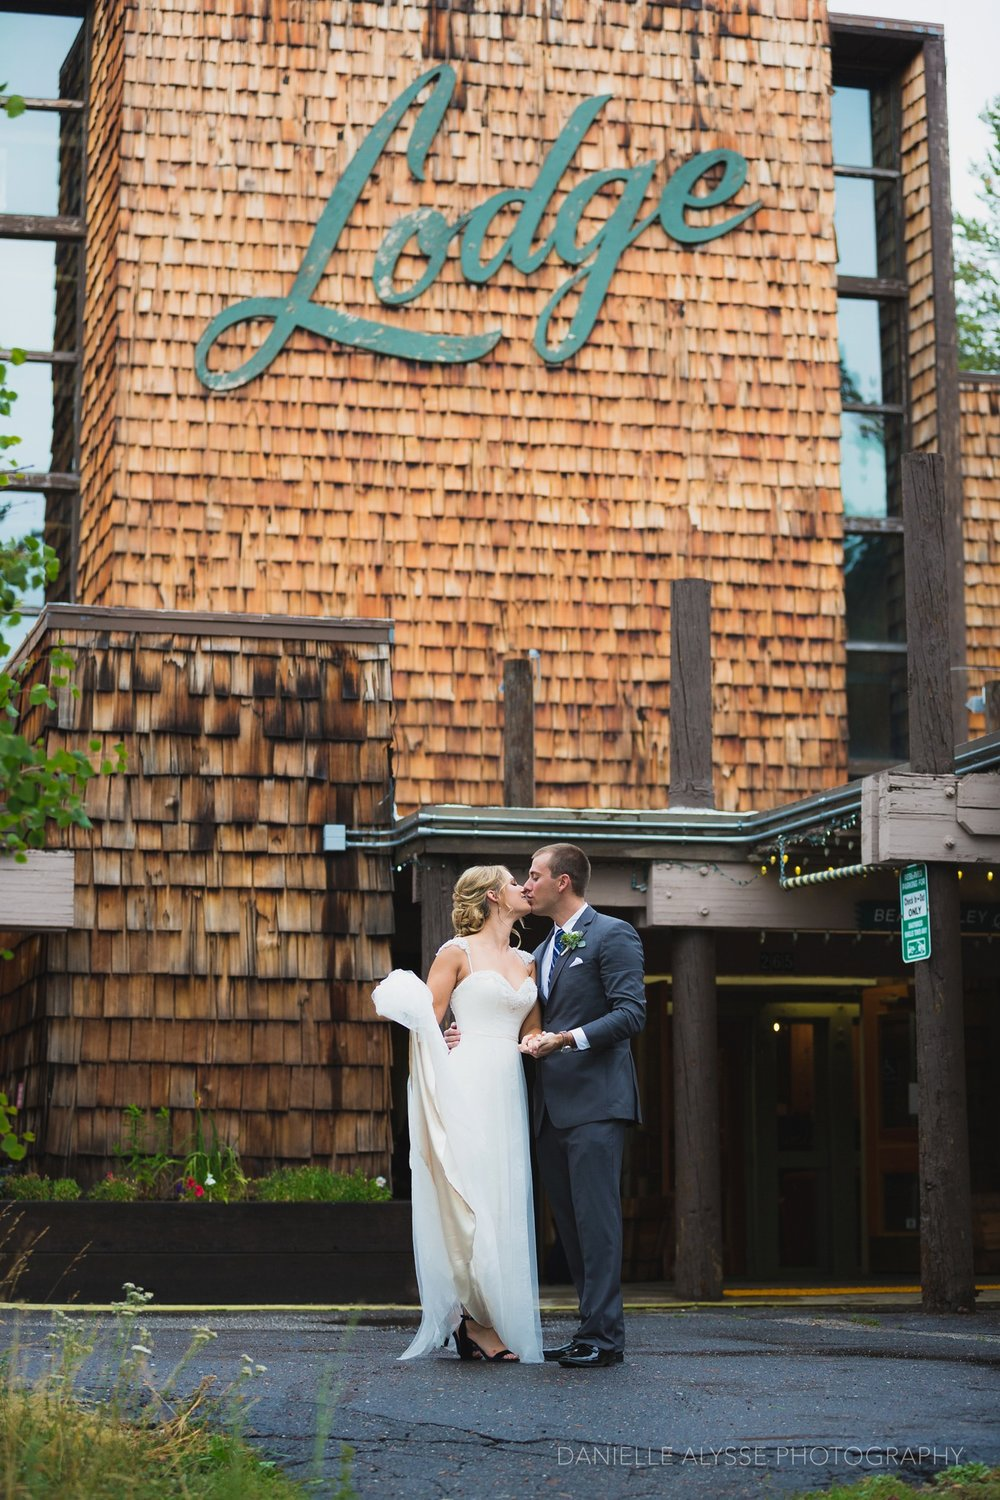 170819_blog_leslie_jeremy_wedding_bear_valley_lodge_arnold_danielle_alysse_photography_sacramento_photographer_deliver566_WEB.jpg